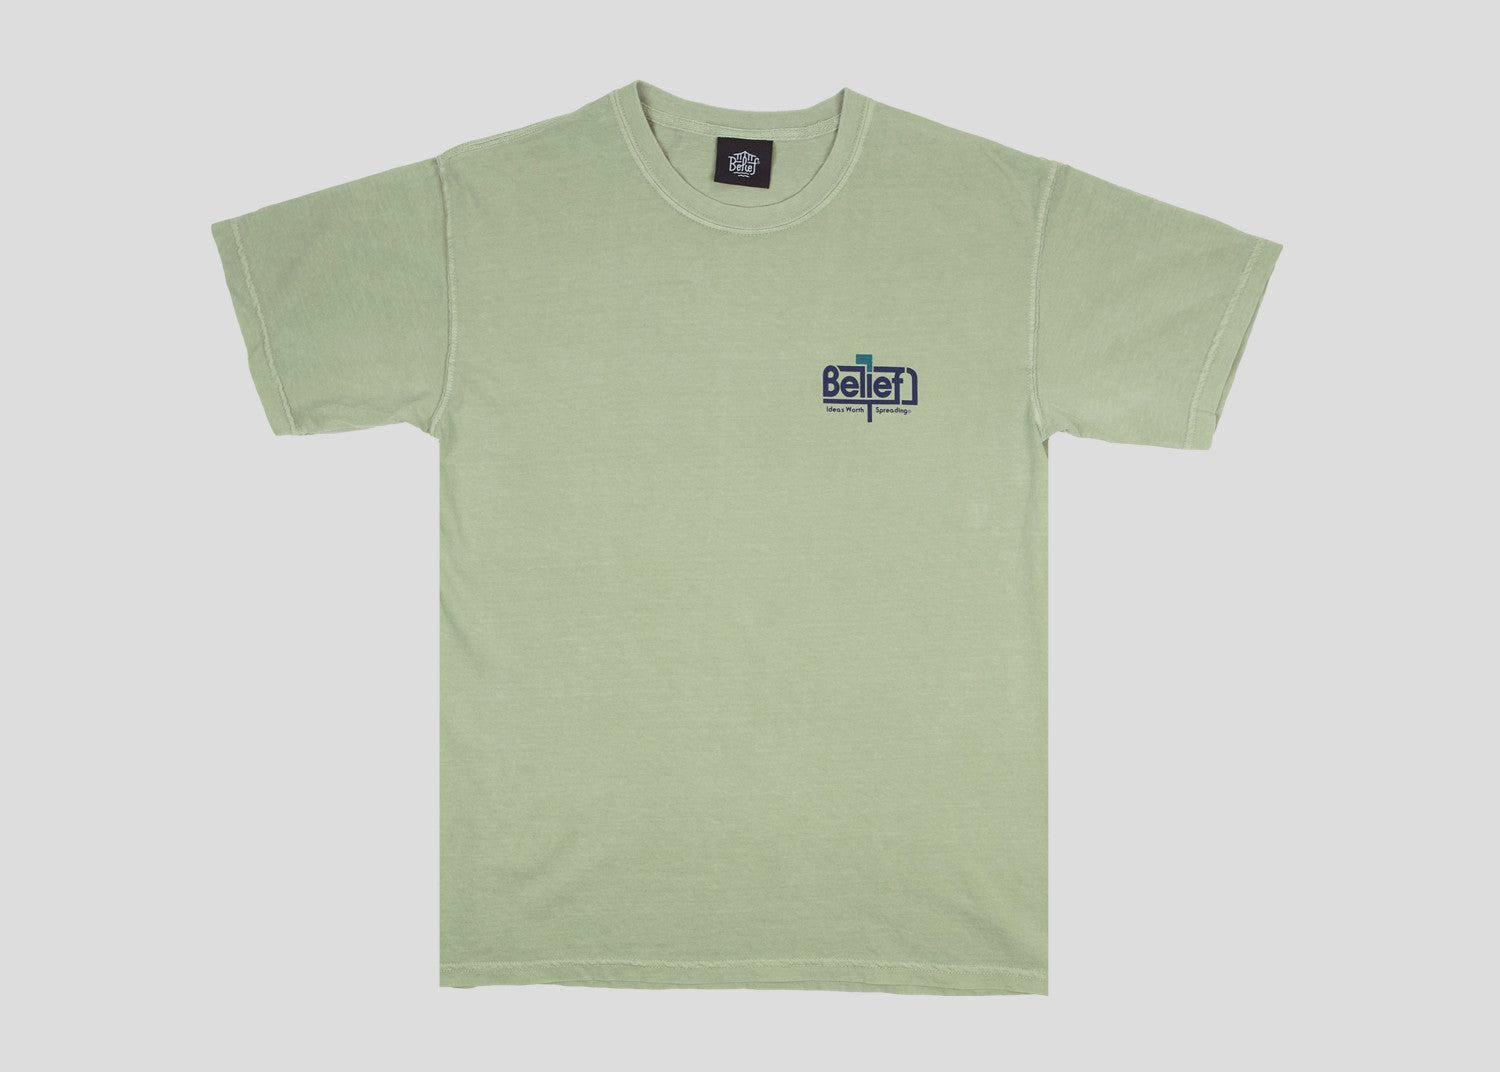 Posted Tee - Sandstone